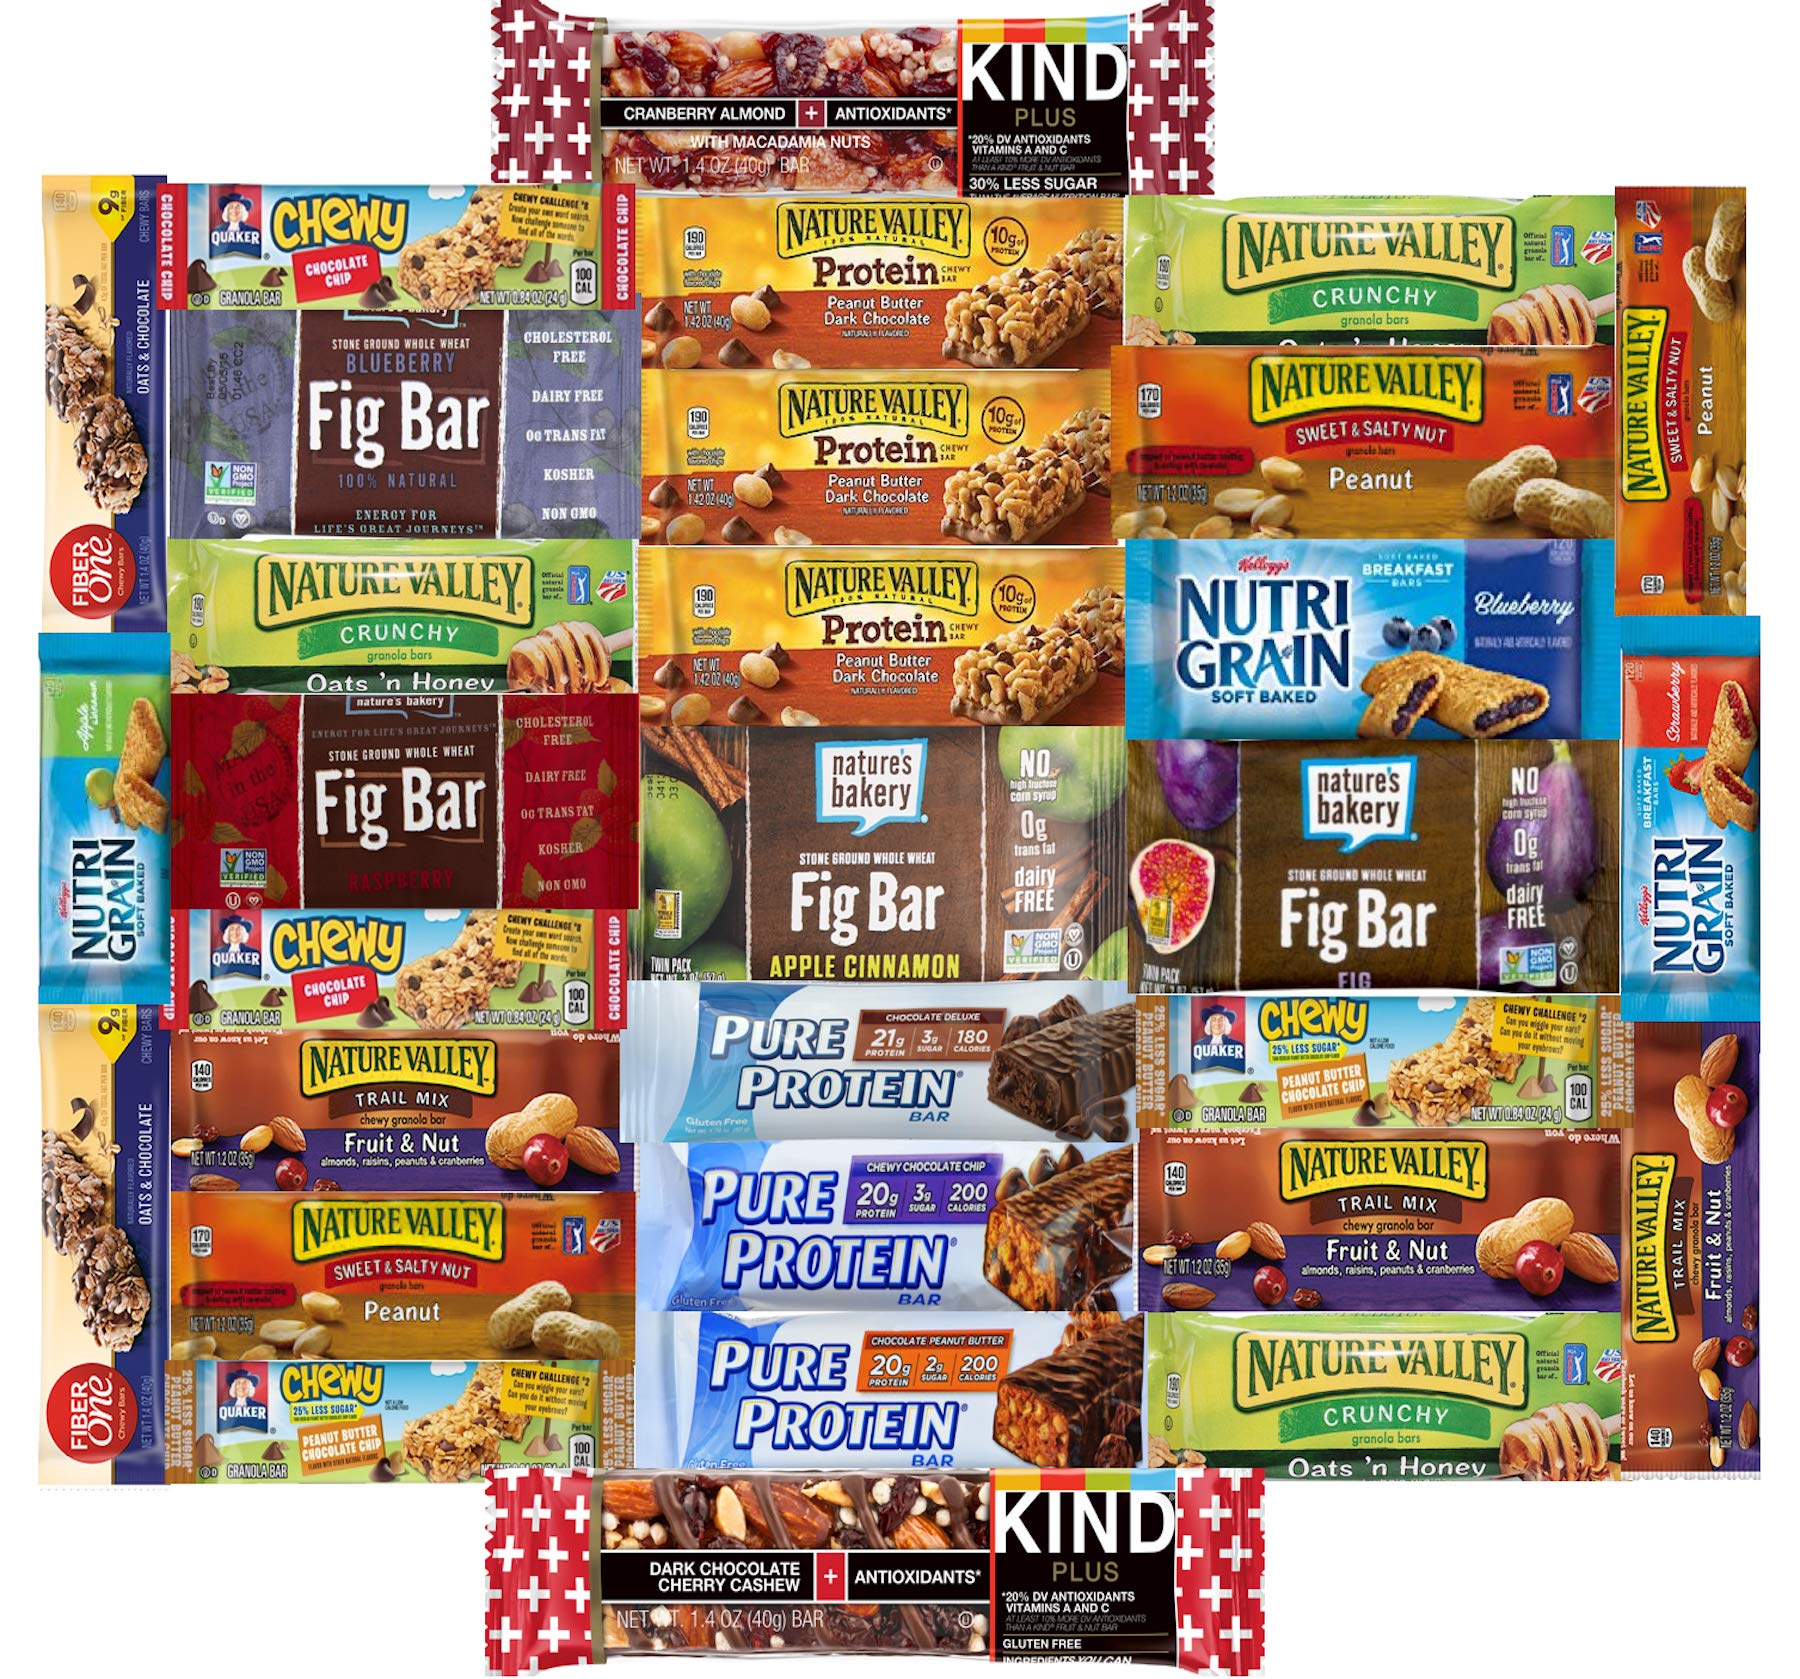 Fitness Box - Protein & Healthy Granola Bars NEW ASSORTMENTs Sampler Snack Box (30 Count) - Care Package - Gift Pack - Variety of Fitness, Energy Bars and KIND Bars.